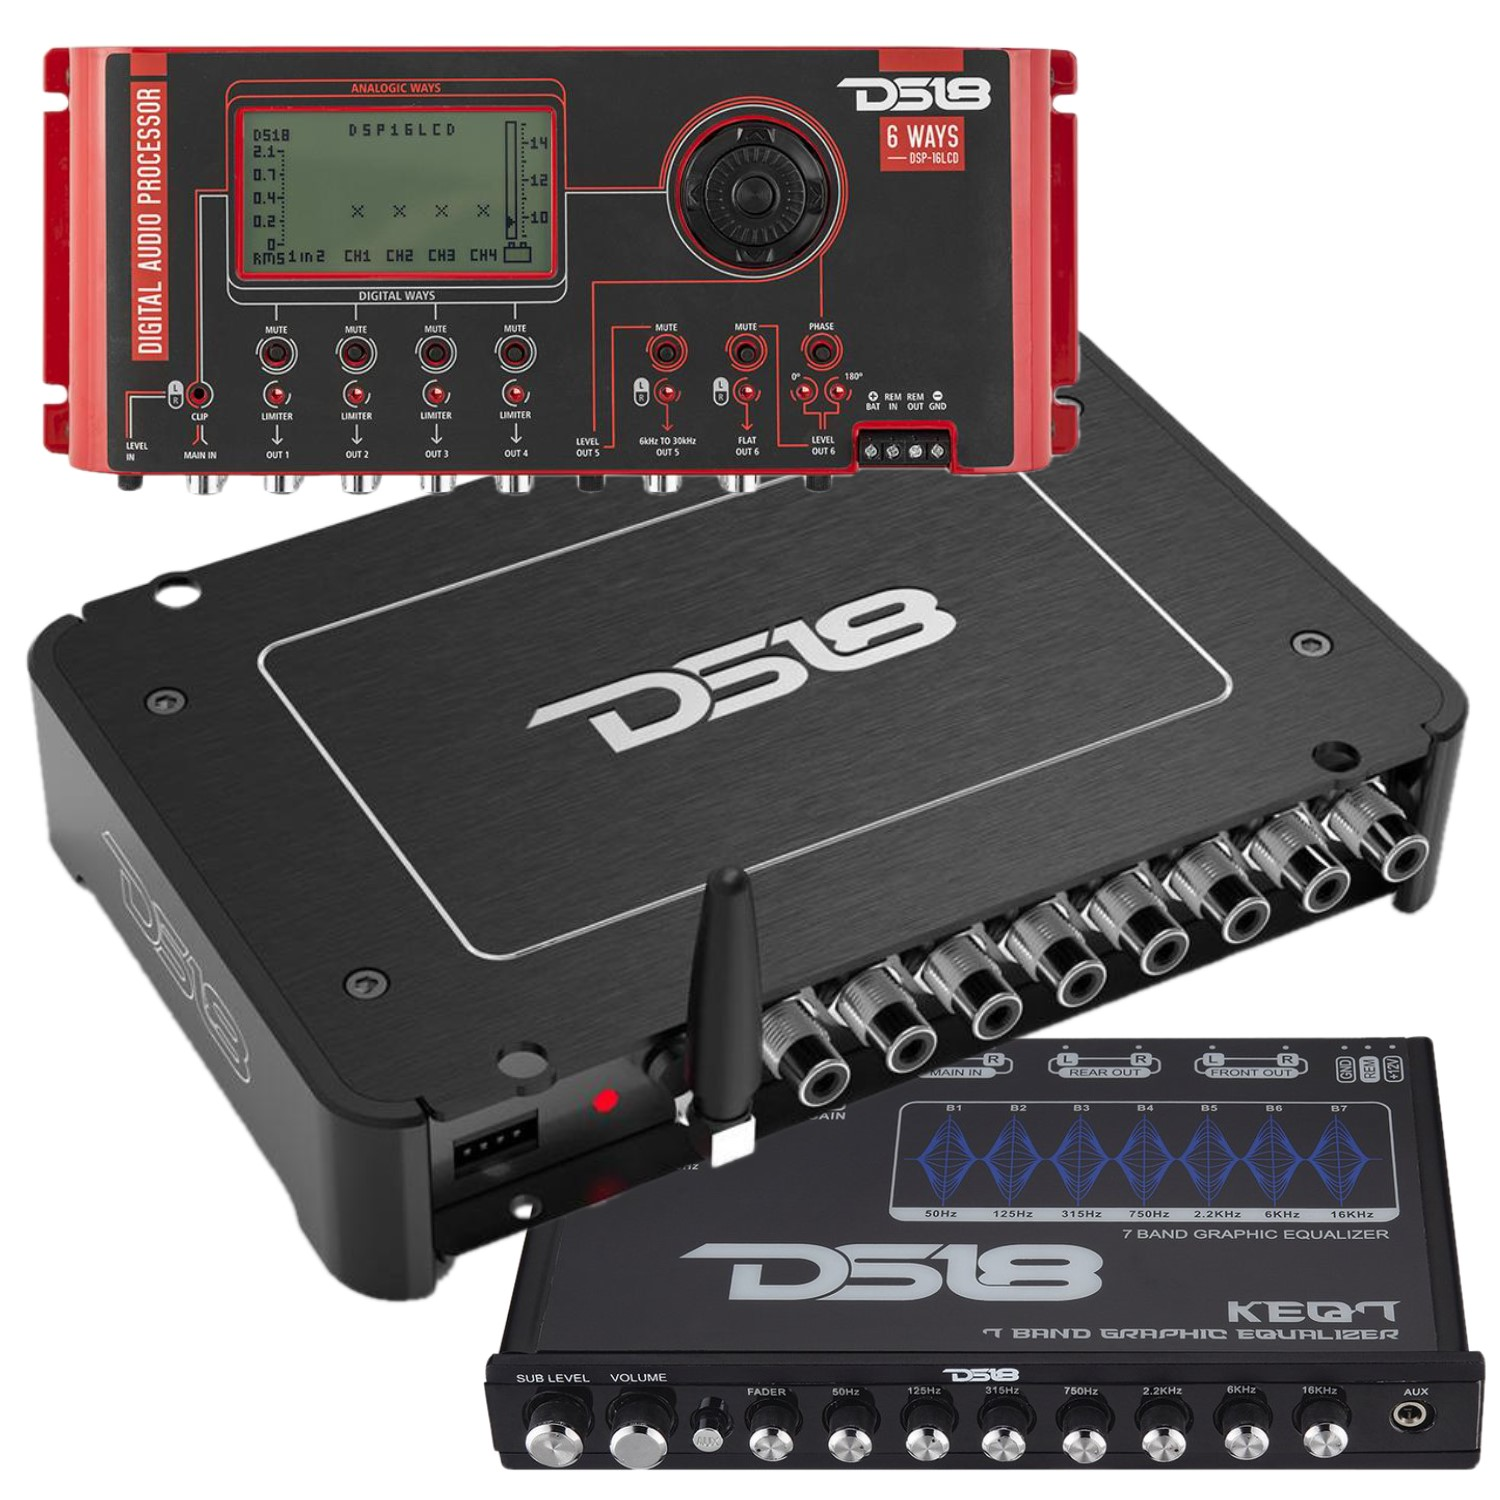 Sound Processors - DS18